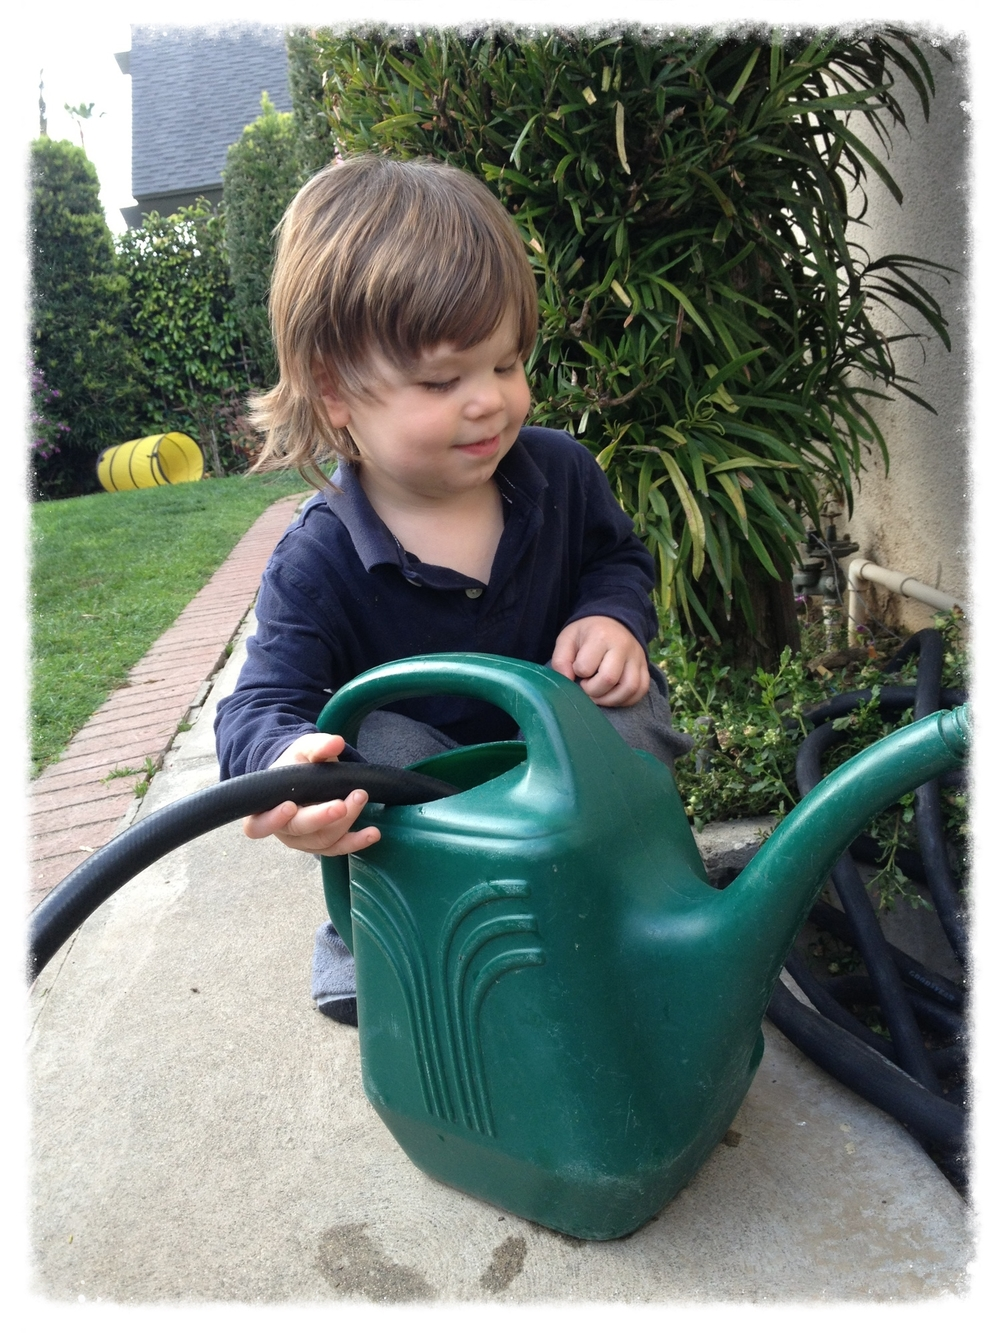 3 year old Darus partaking in one of his most favorite activities - watering!